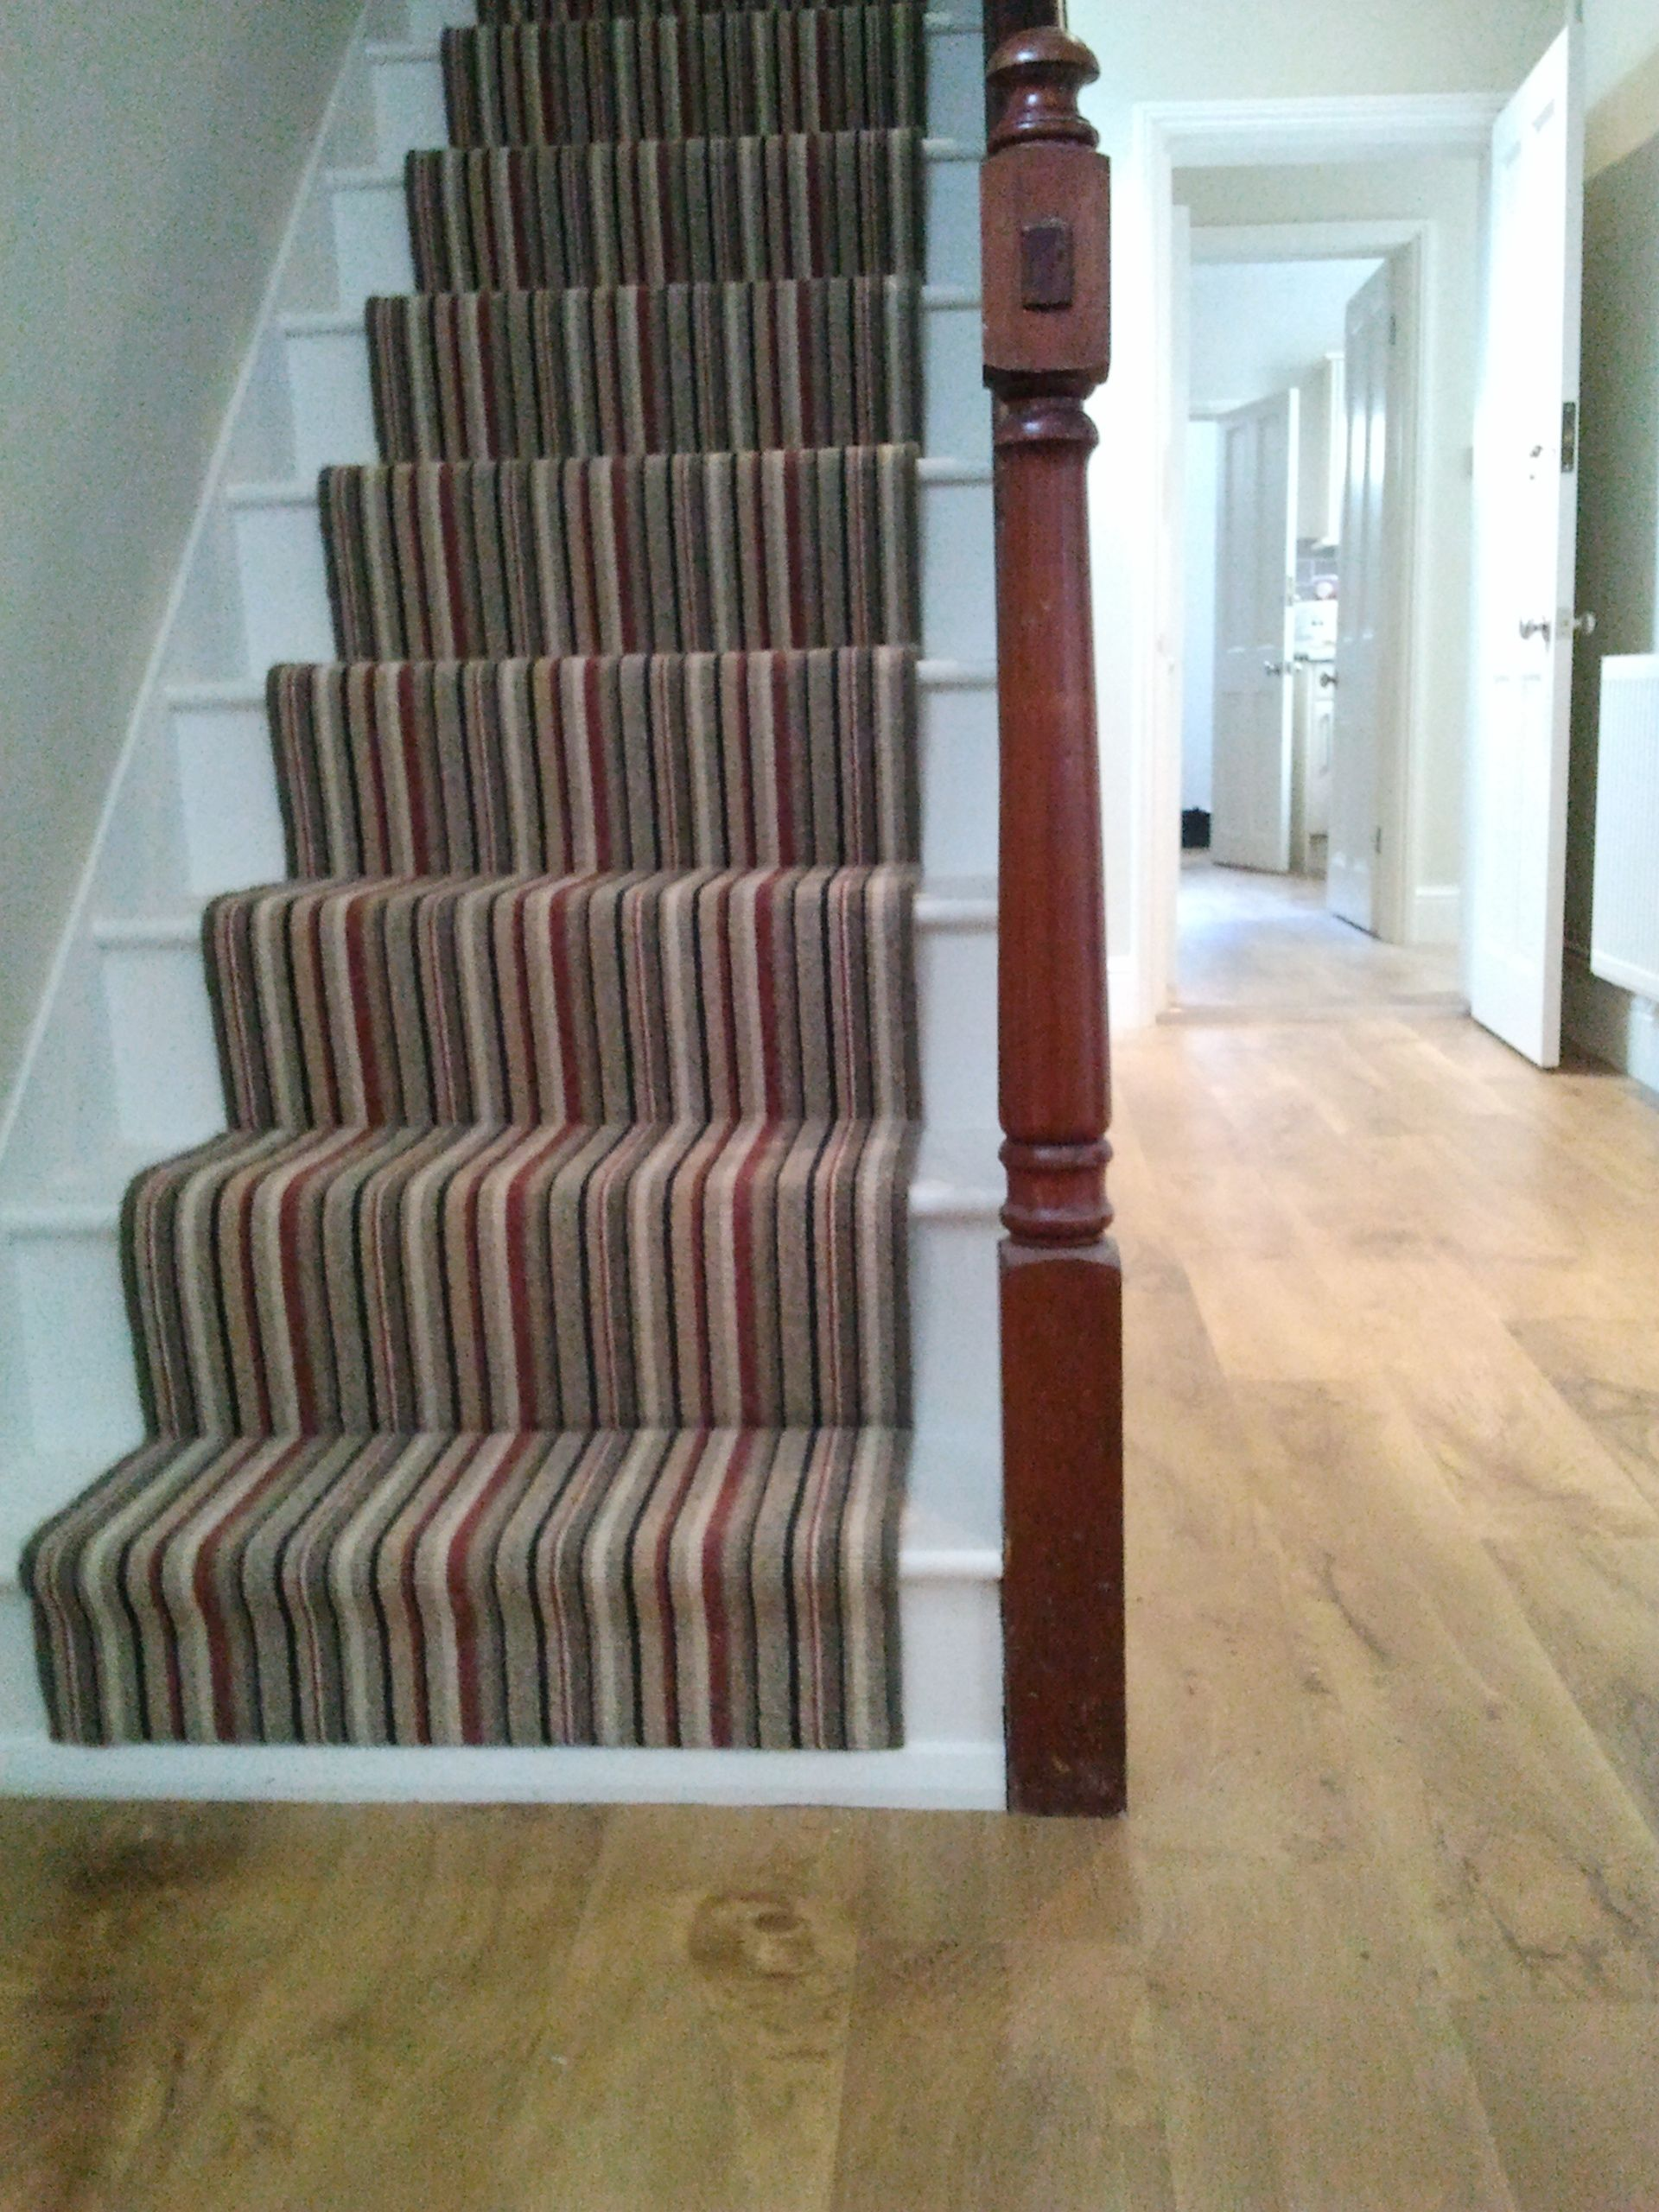 Hallway stair carpet ideas  Image detail for Stair Runners  Striped Stair Runner